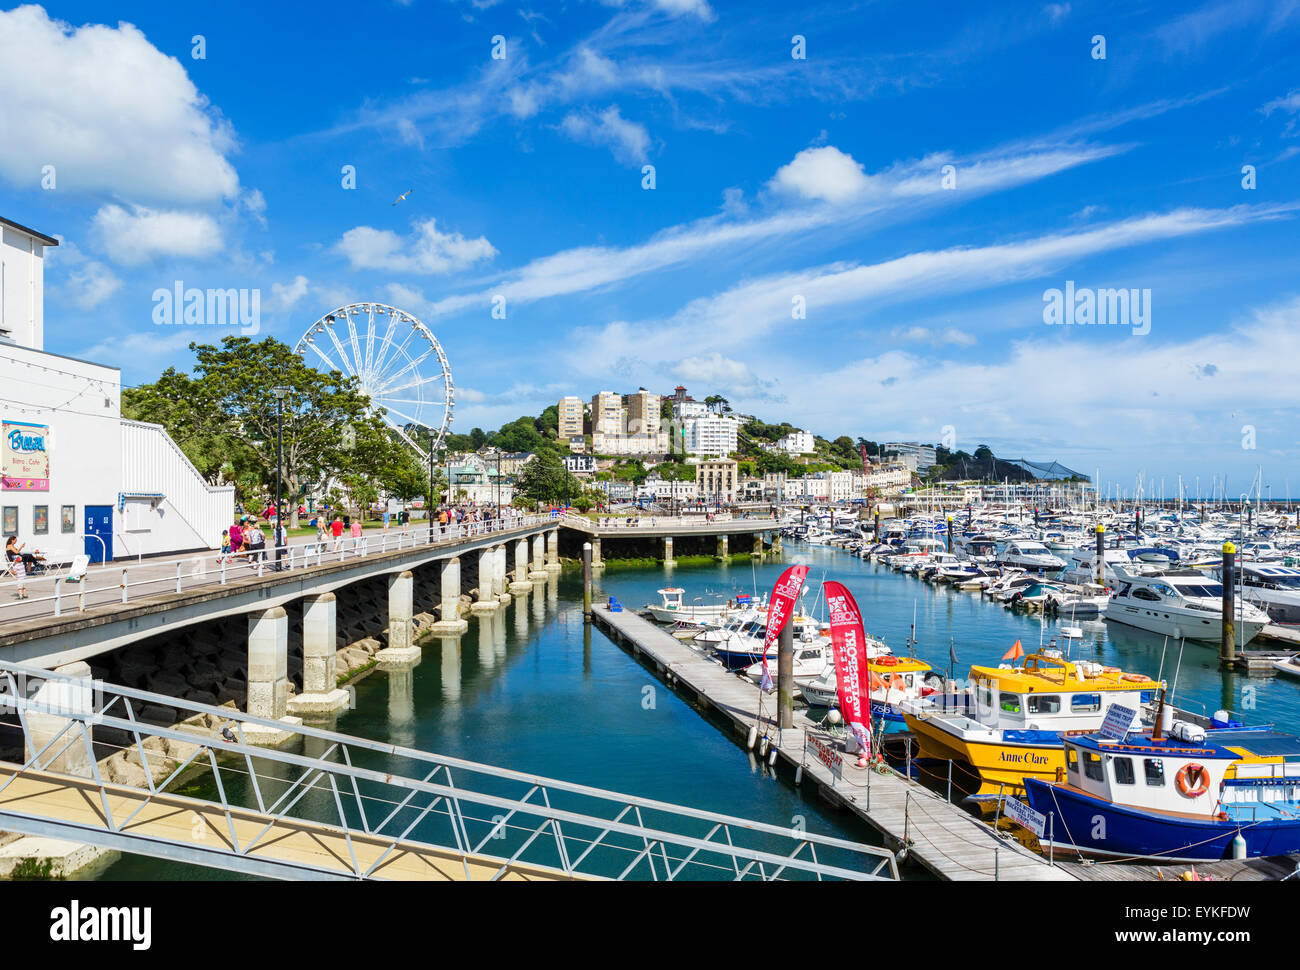 The marina and promenade in Torquay, Torbay, Devon, England, UK - Stock Image